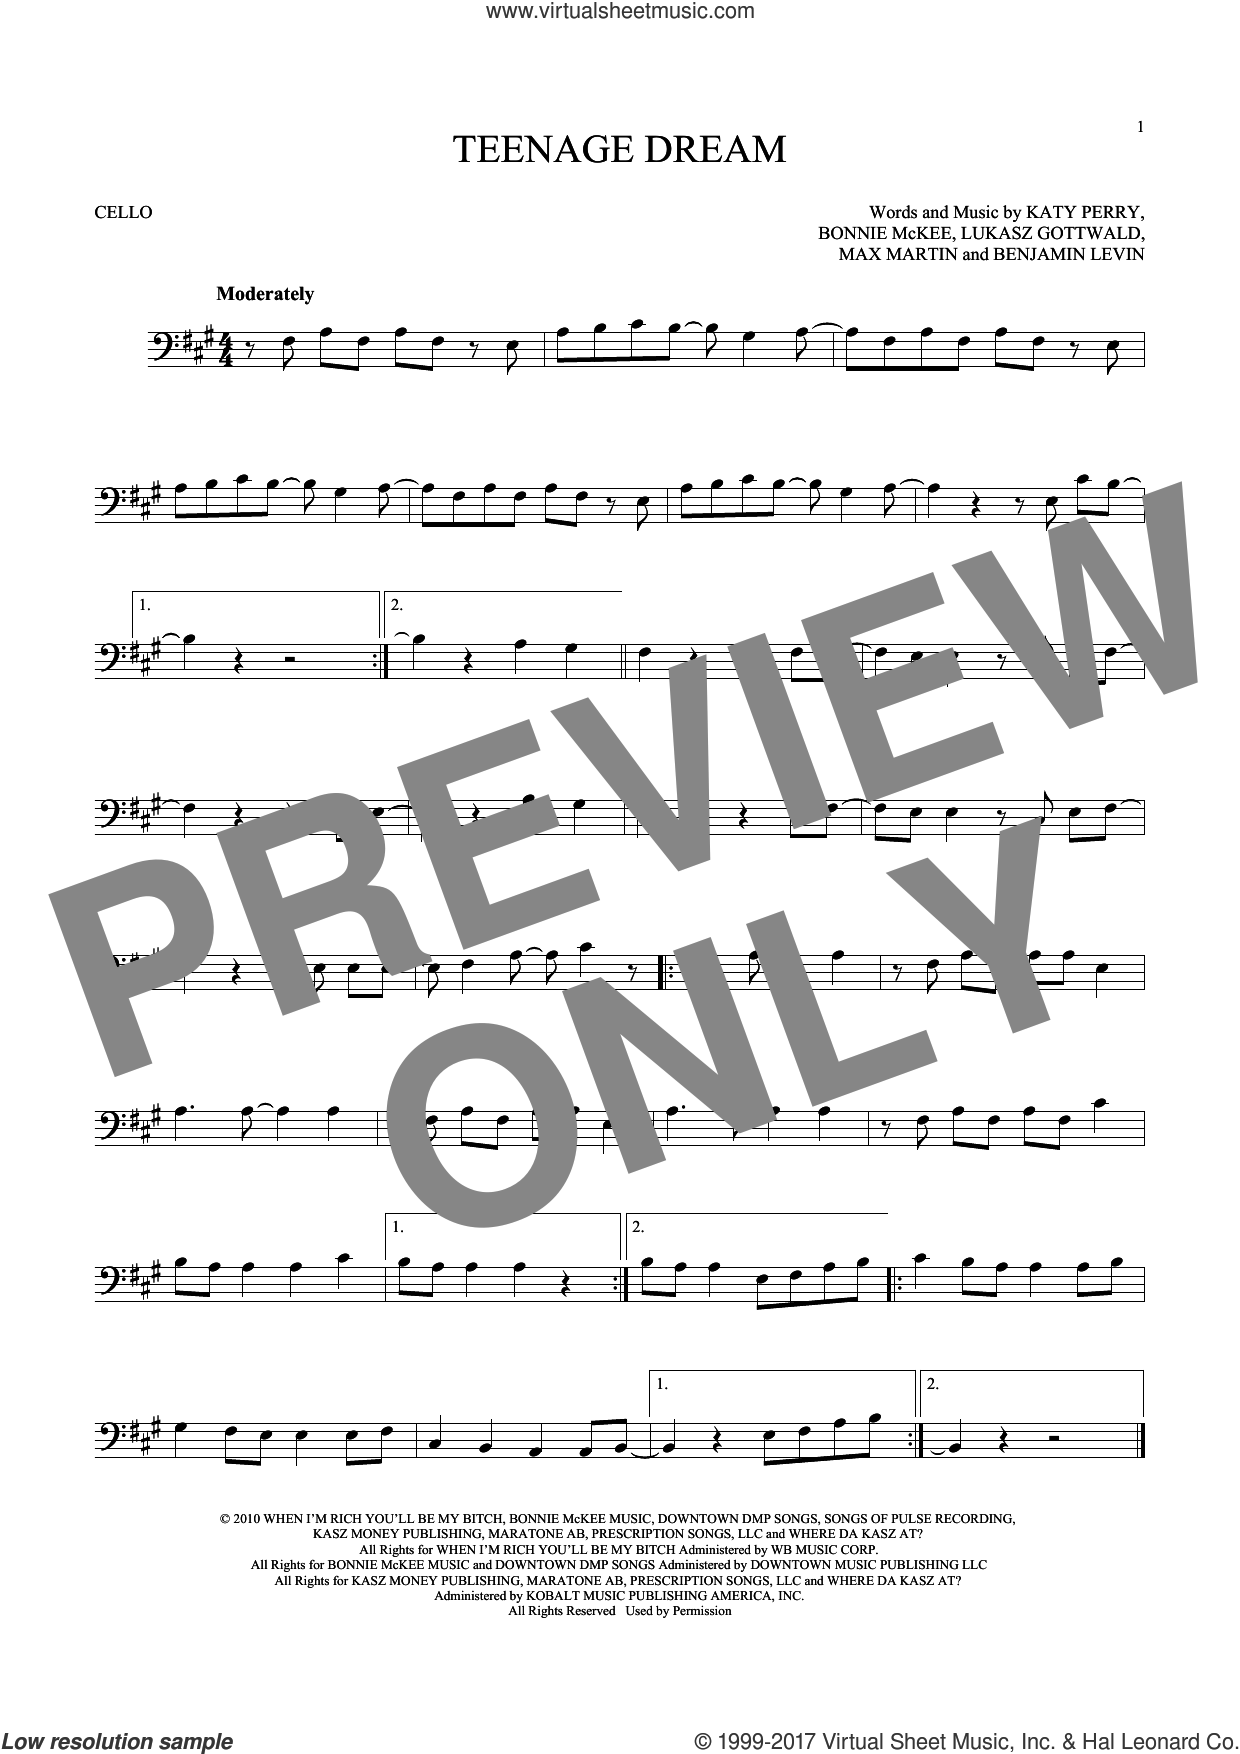 Teenage Dream sheet music for cello solo by Katy Perry, Benjamin Levin, Bonnie McKee, Lukasz Gottwald and Max Martin, intermediate skill level